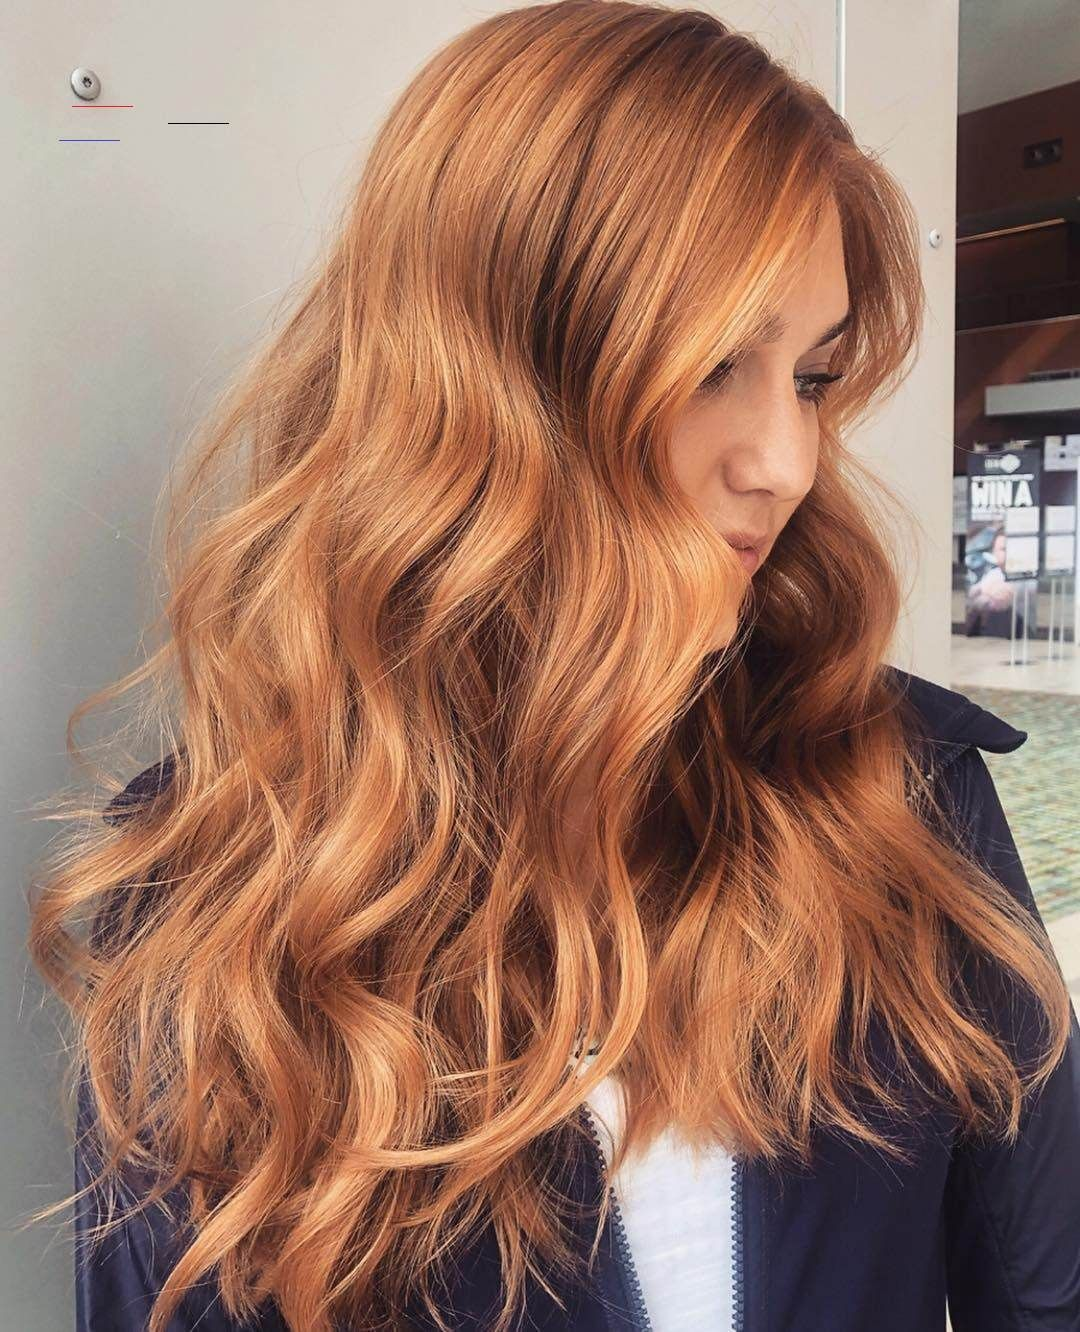 Pin By Yami Paredes On Beauty In 2020 Ginger Hair Color Red Blonde Hair Strawberry Blonde Hair